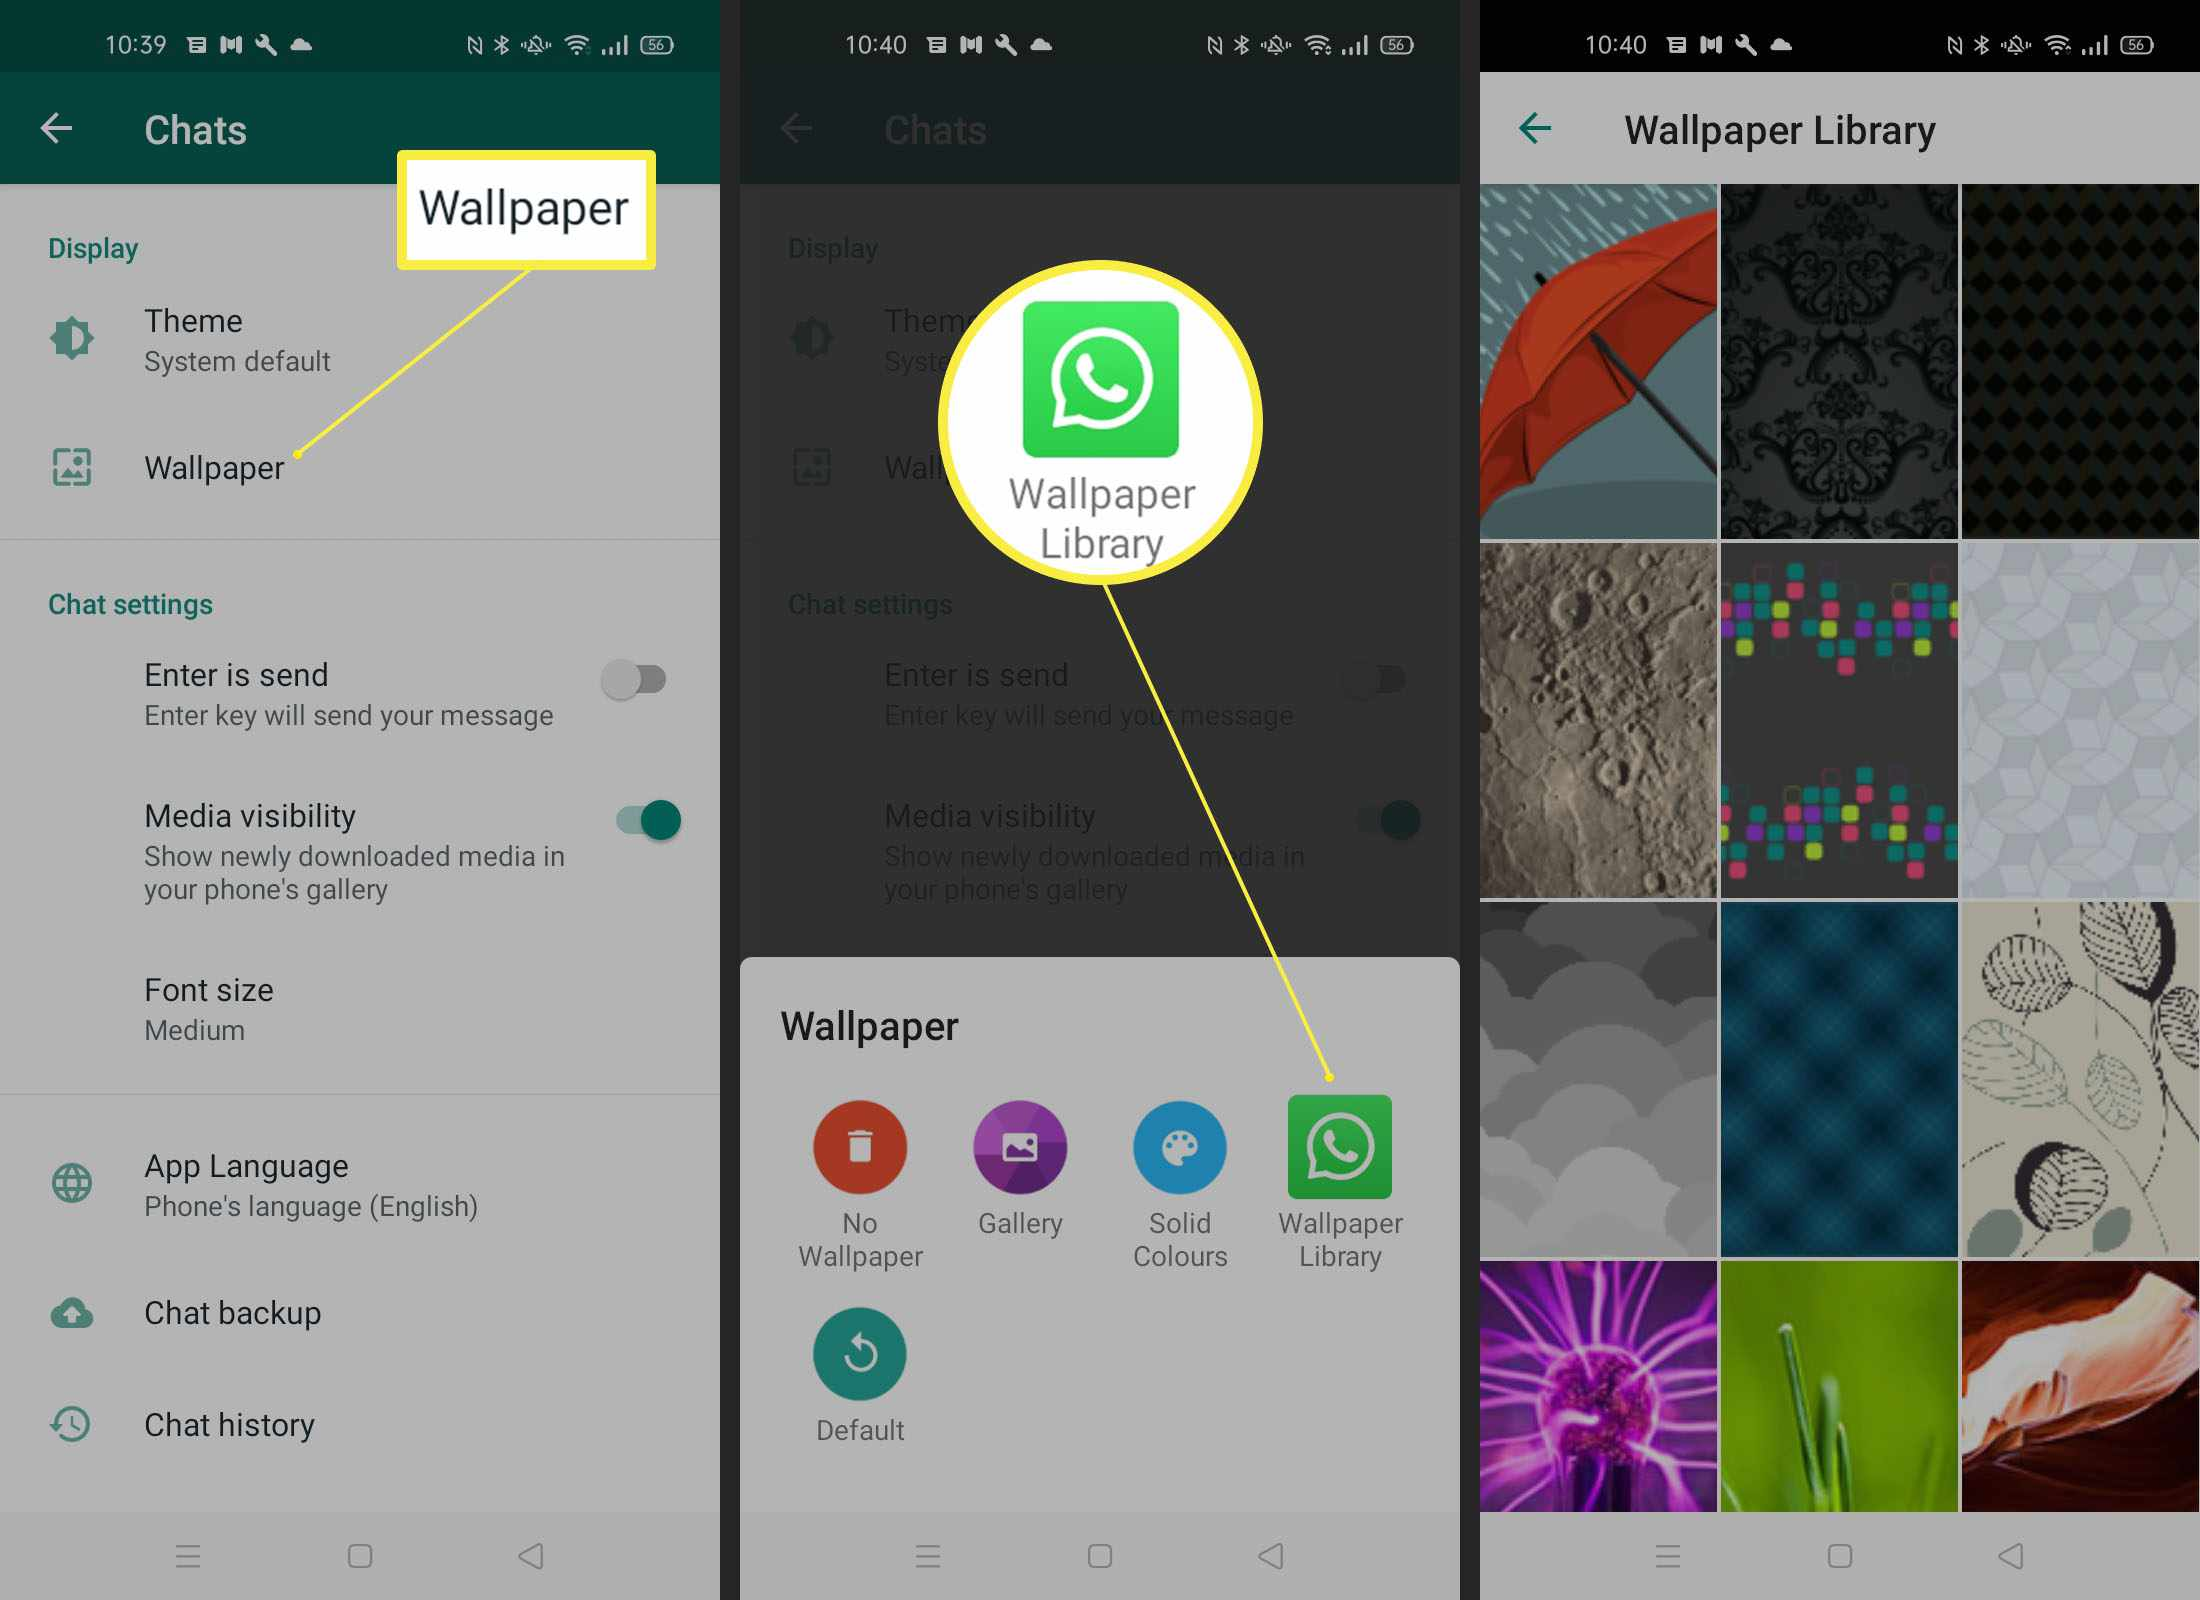 Steps needed to add wallpaper from Wallpaper Library on WhatsApp Android